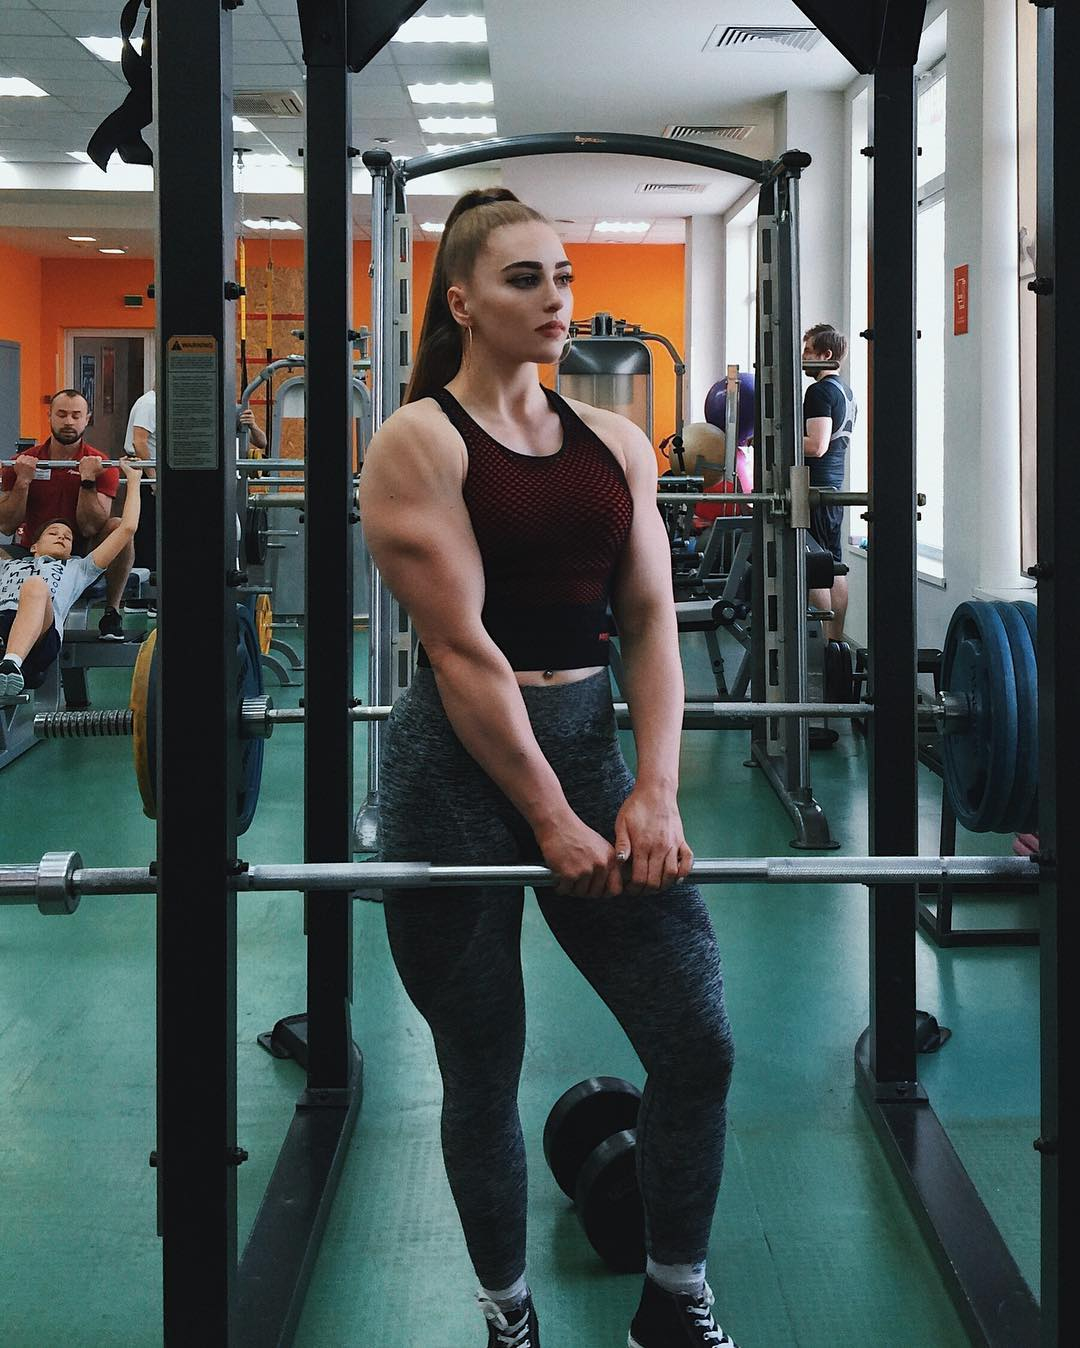 powerlifting champion responds to body shamers